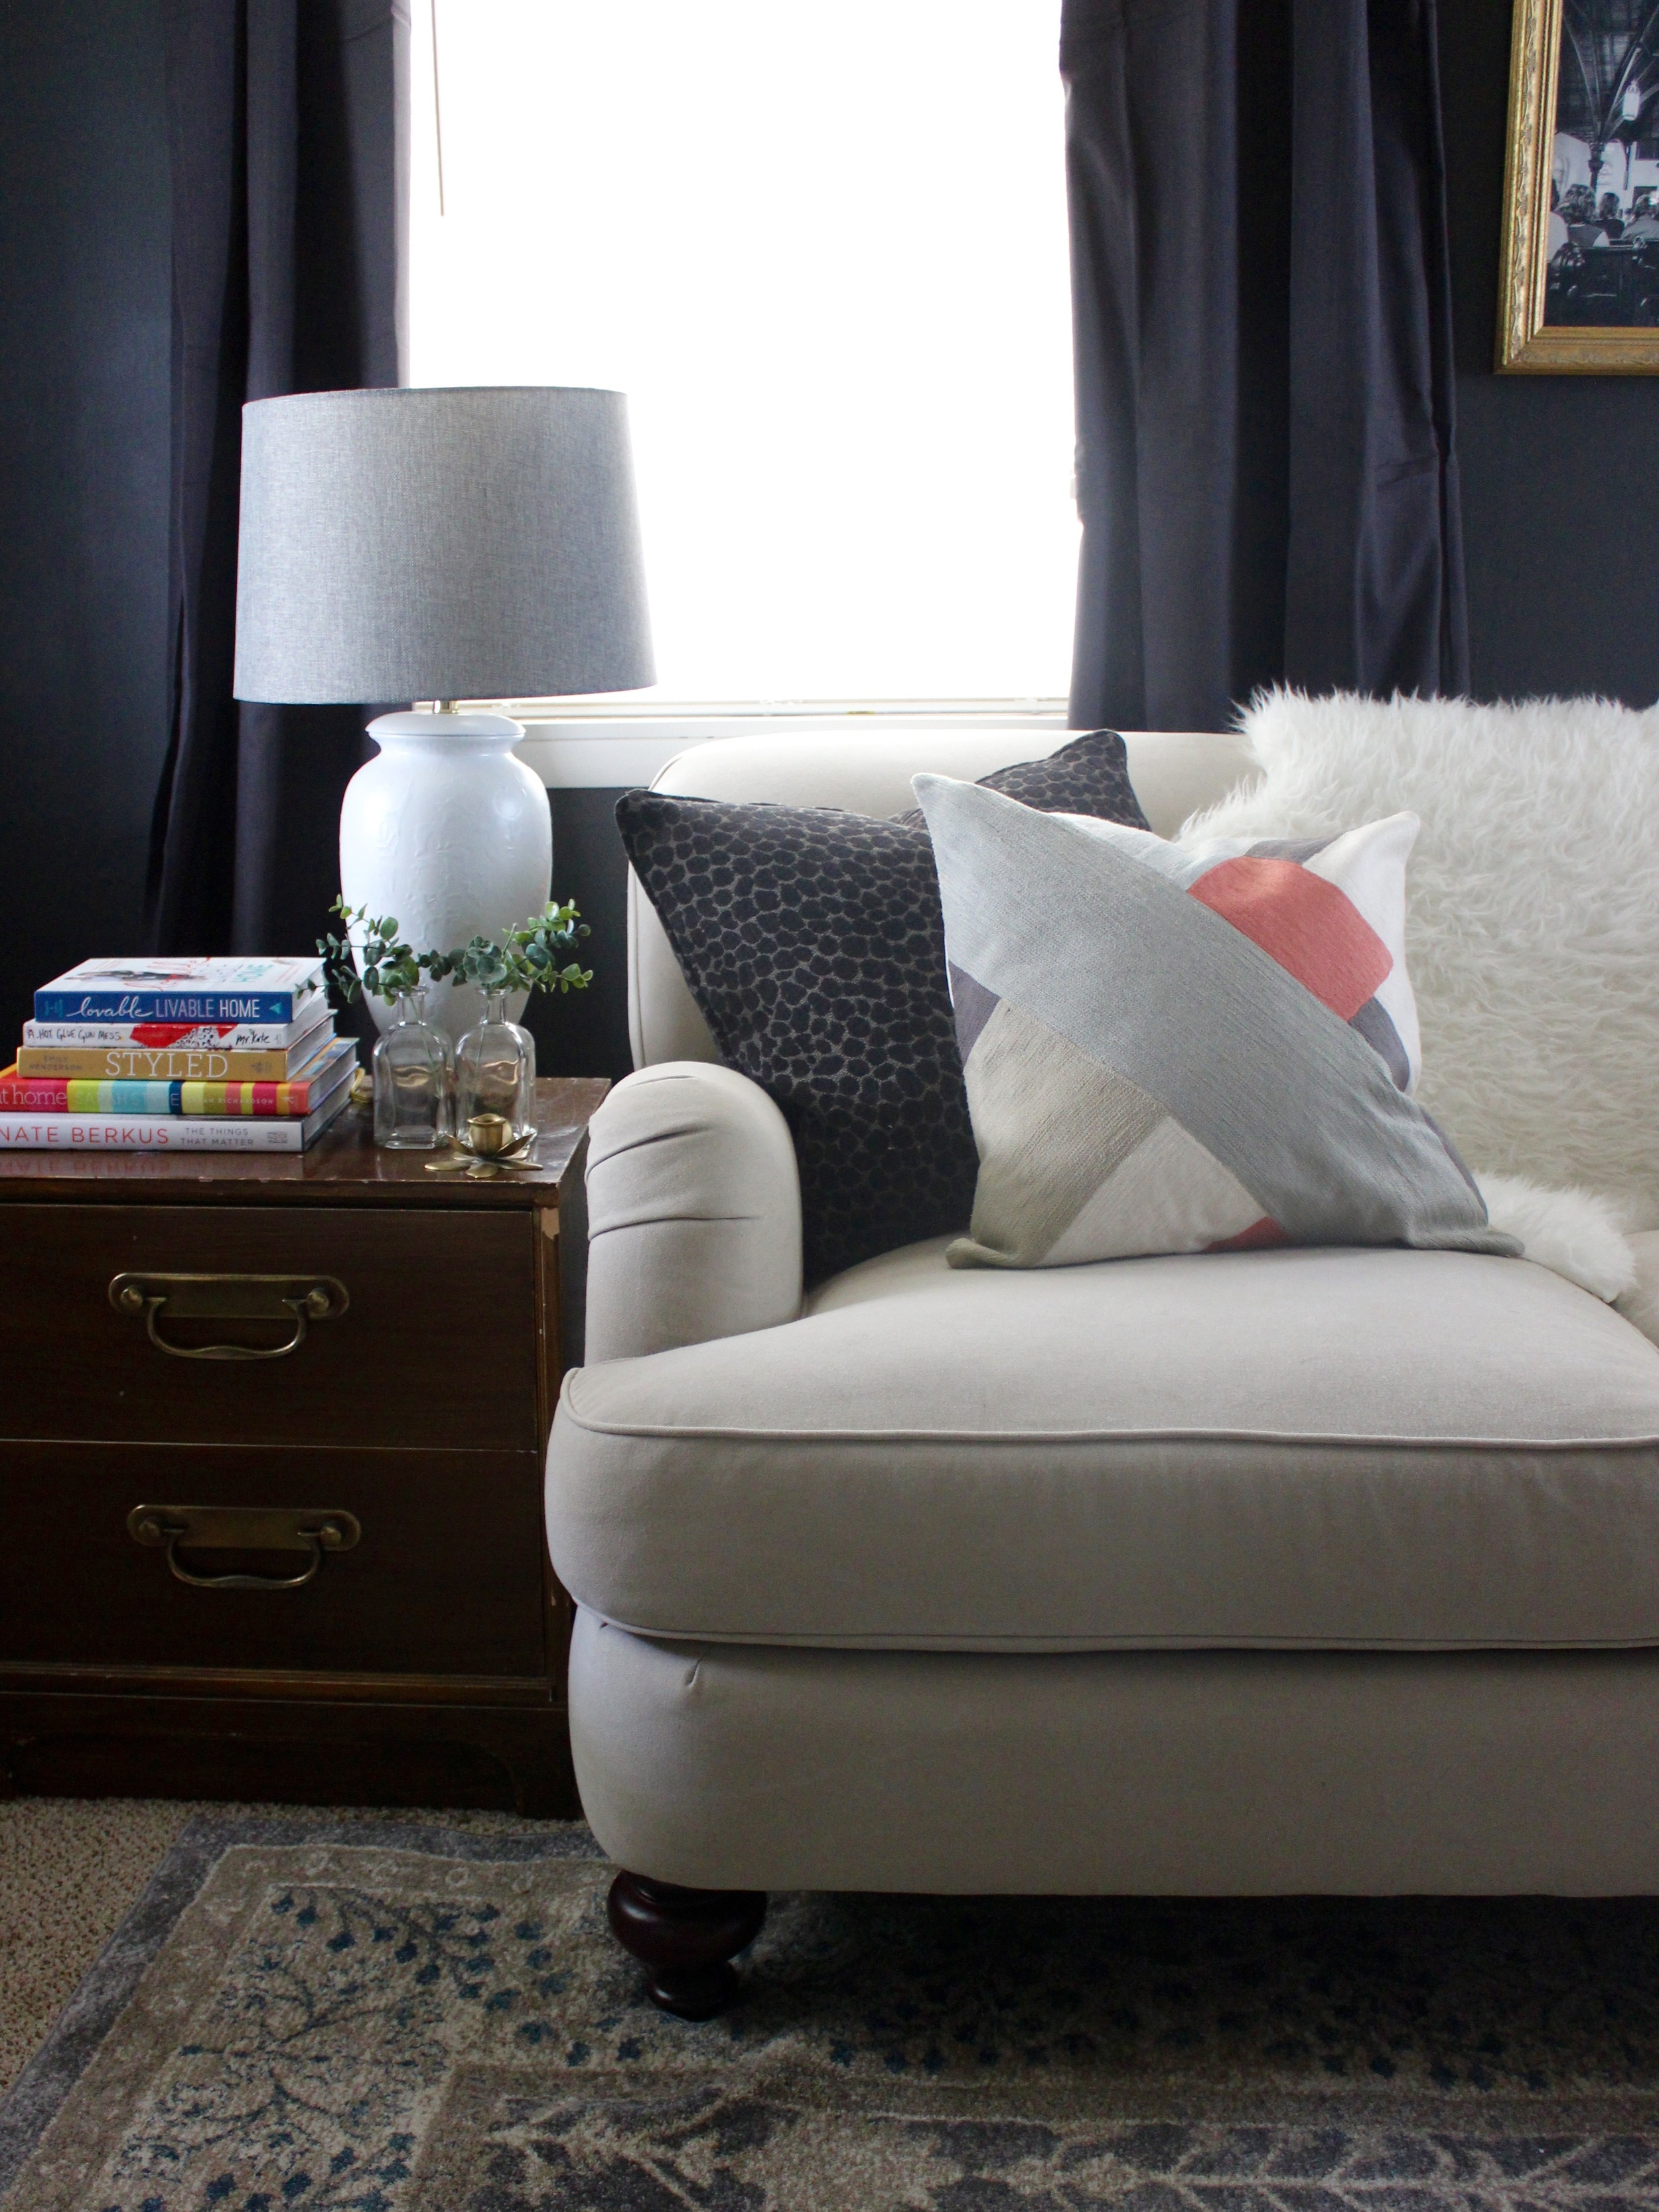 5 Money & Time Saving Things To Do BEFORE Buying New Living Room Furniture - This post plus more #debtfreedecorating tips from Stevie Storck Design Co.